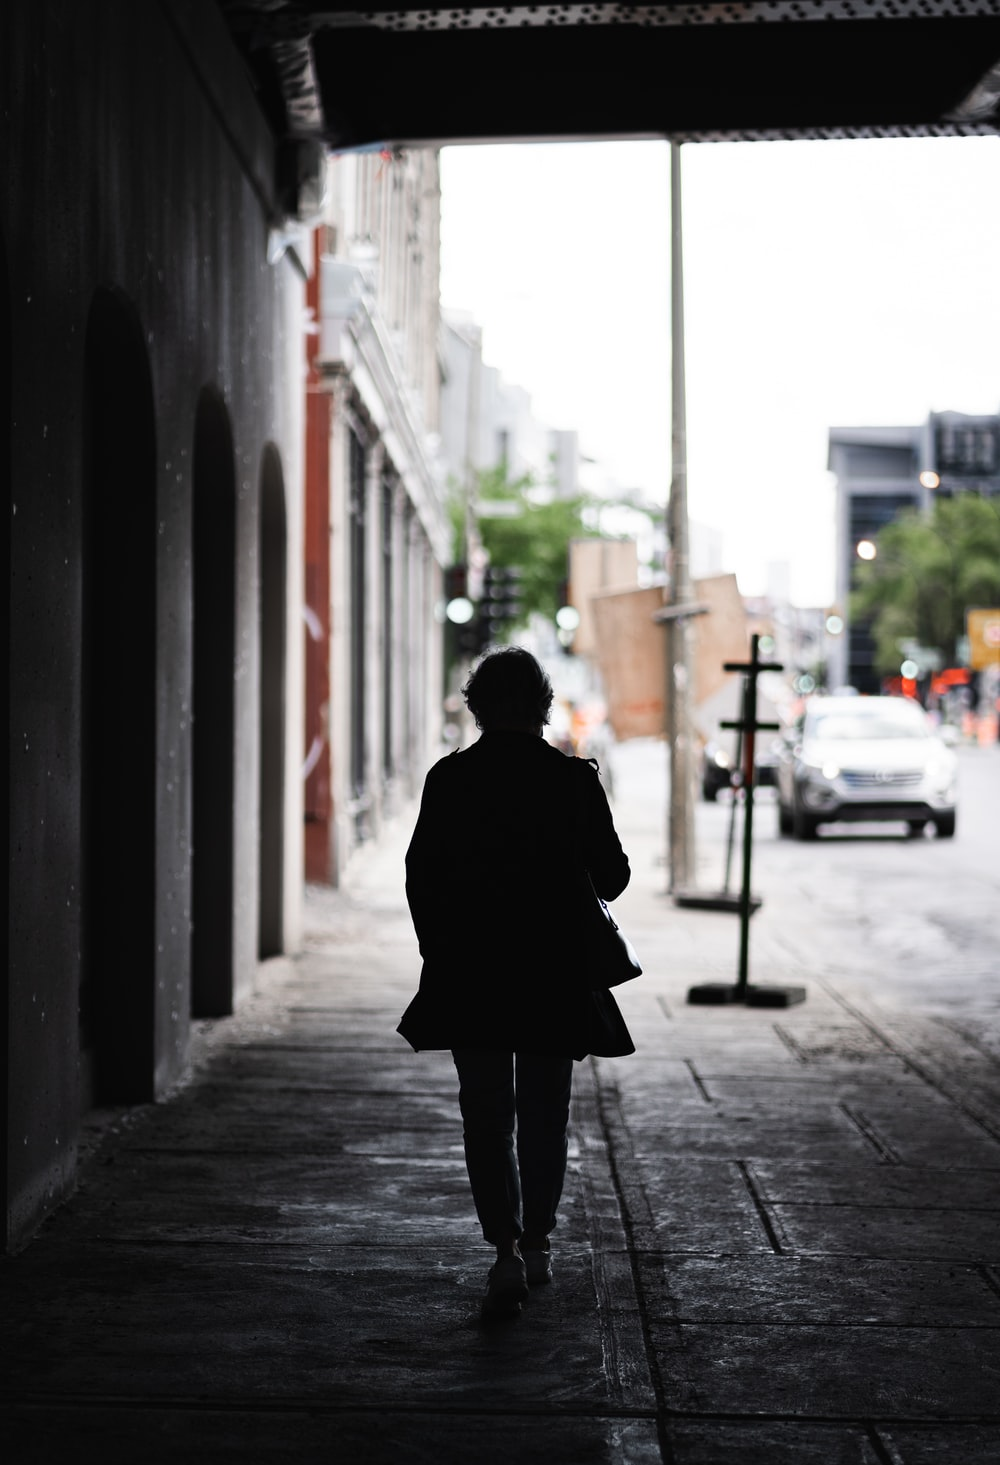 person in black coat standing on sidewalk during daytime